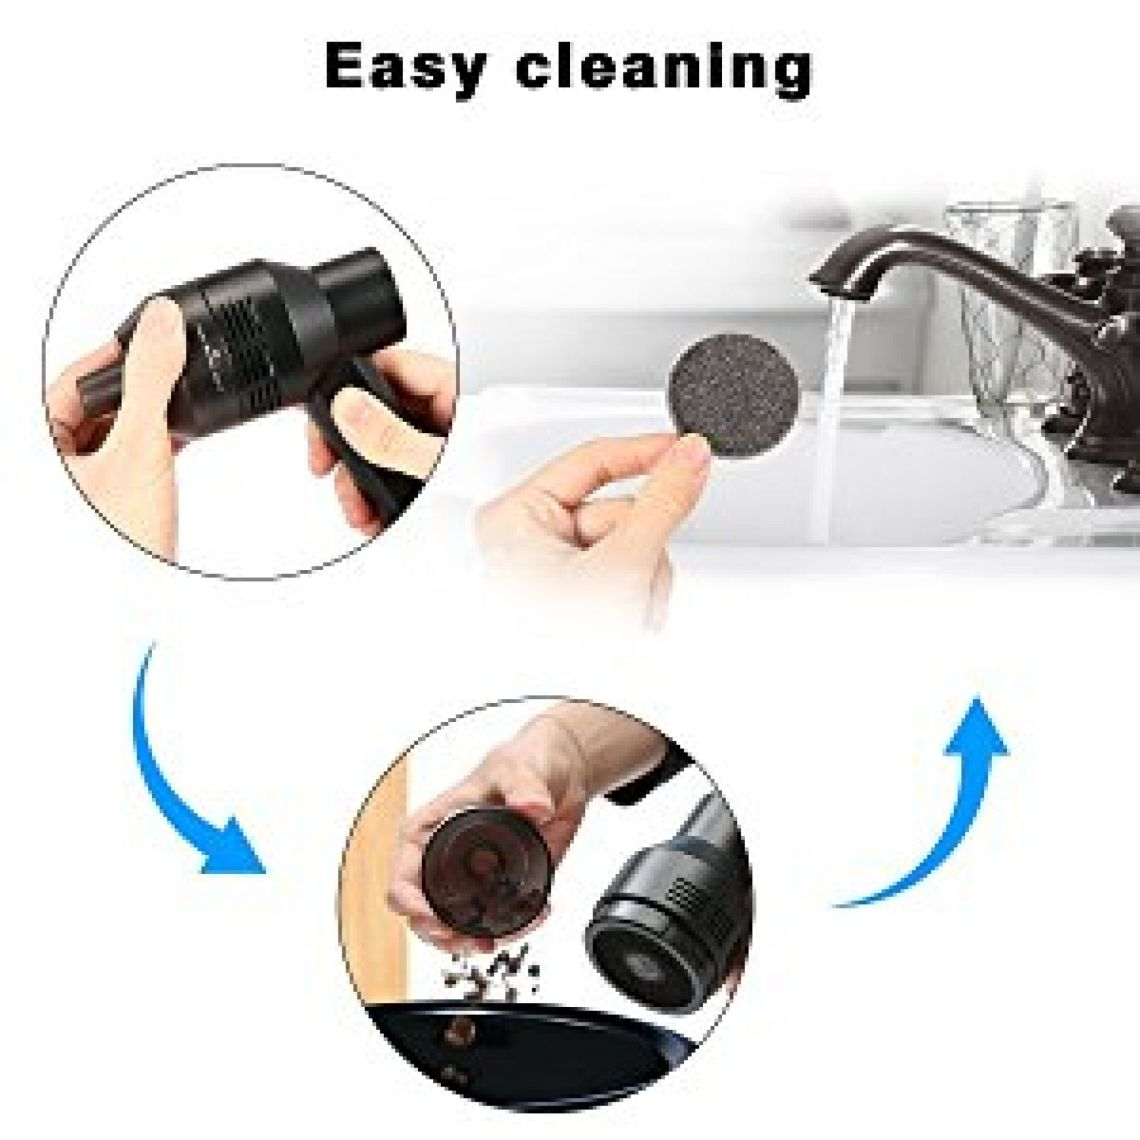 Amazon.com: MECO USB Cleaner with Cleaning Gel, Mini Multifunctional USB Vacuum Cleaner, Cleaning Kits Tools for Keyboard, Car Device, Telephone, Printer, Camera Equipment: Computers & Accessories